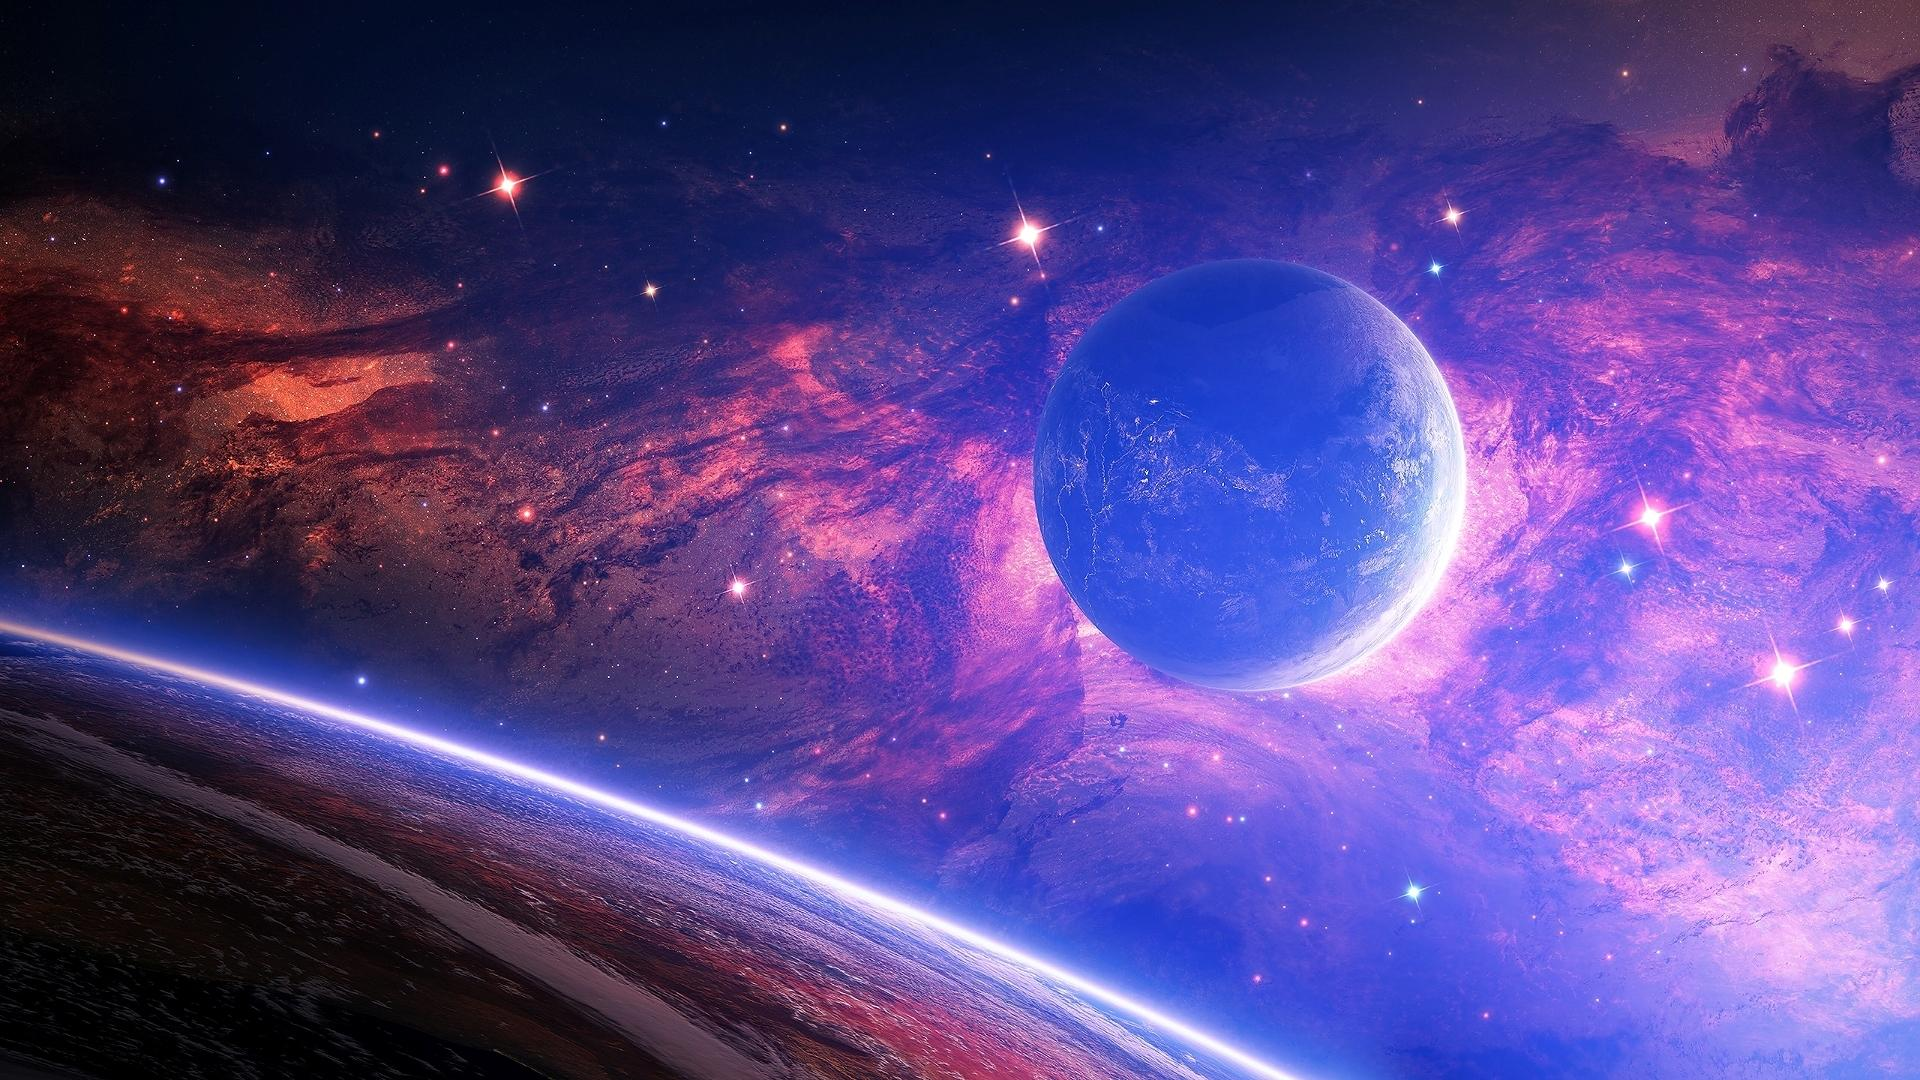 Beautiful space wallpapers wallpapers, HQ Beautiful space